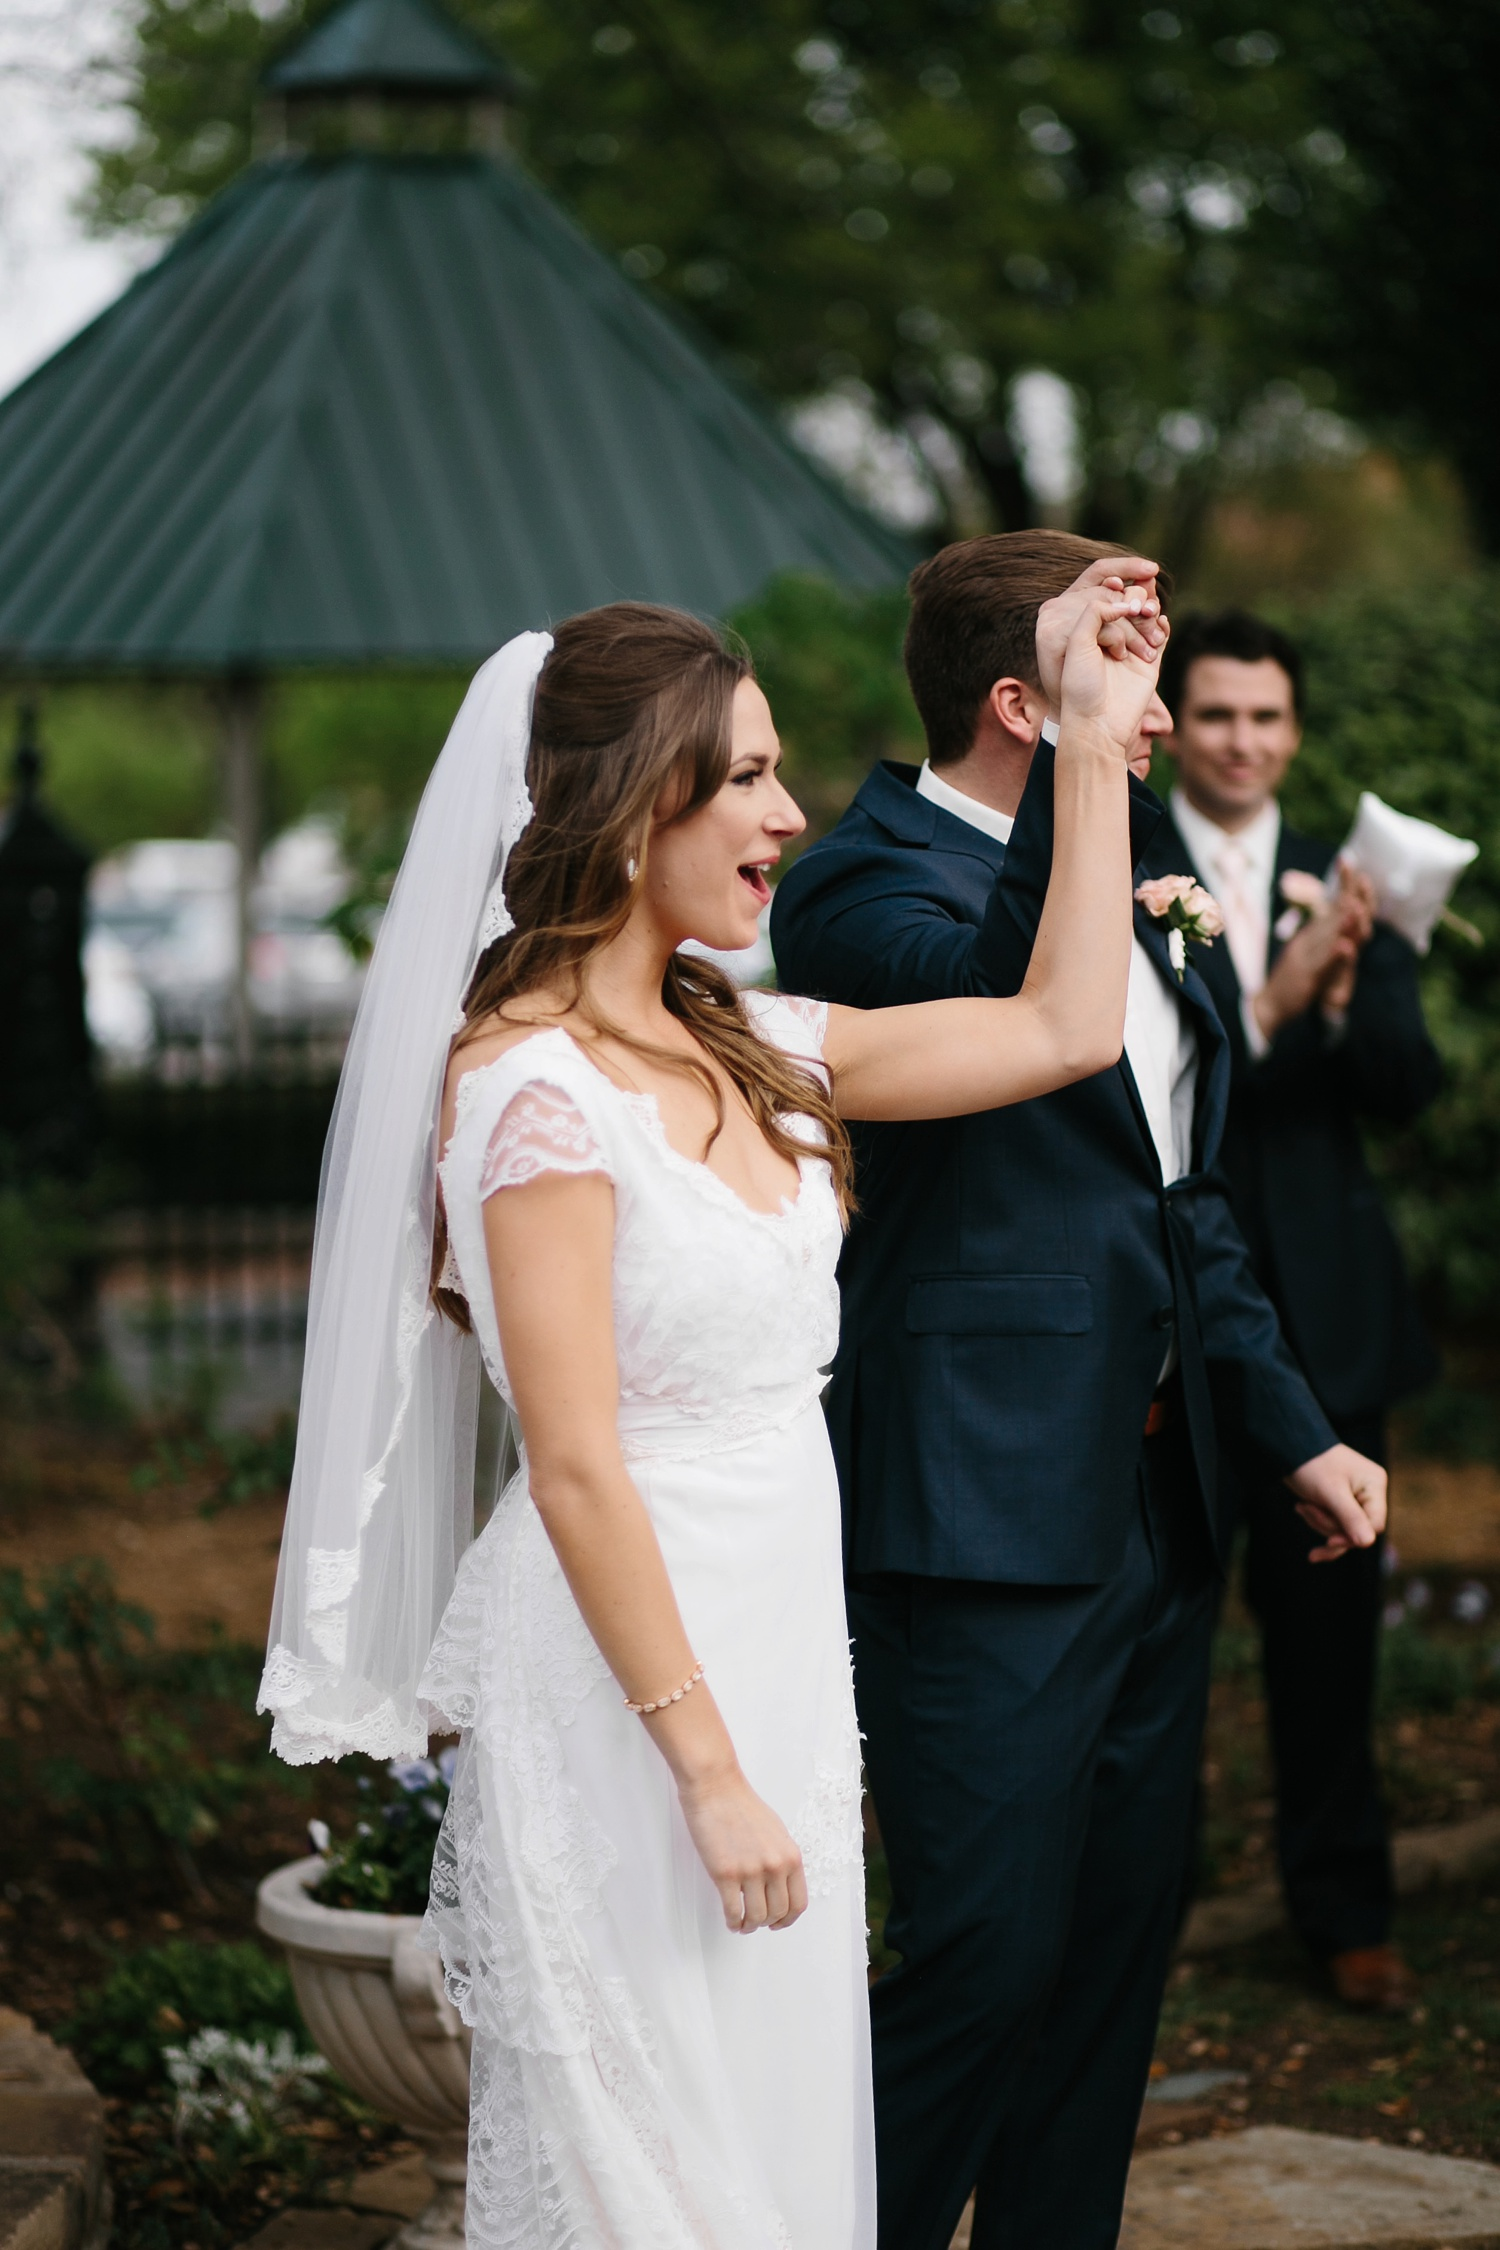 Amber + Daniel an intimate, simple, spring ceremony at Heard Craig Center and reception at Gather in McKinney, Texas by North Texas Wedding Photographer Rachel Meagan Photography 070